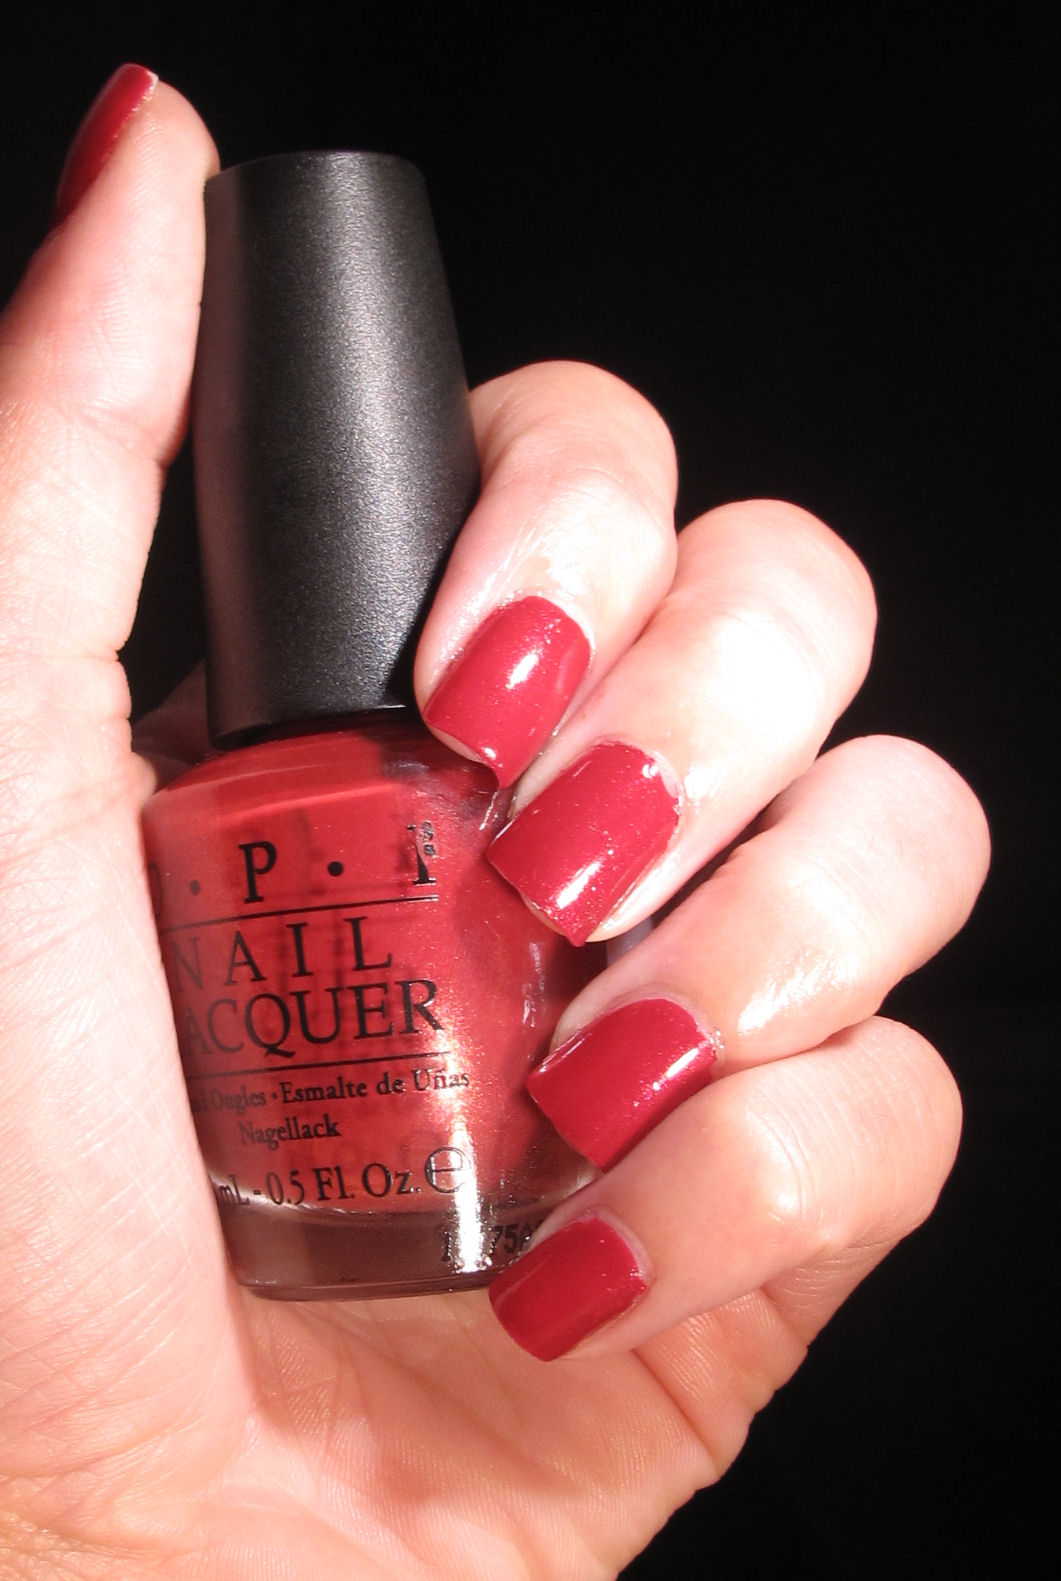 Opi Color To Diner For Nail Designs: OPI Colo...